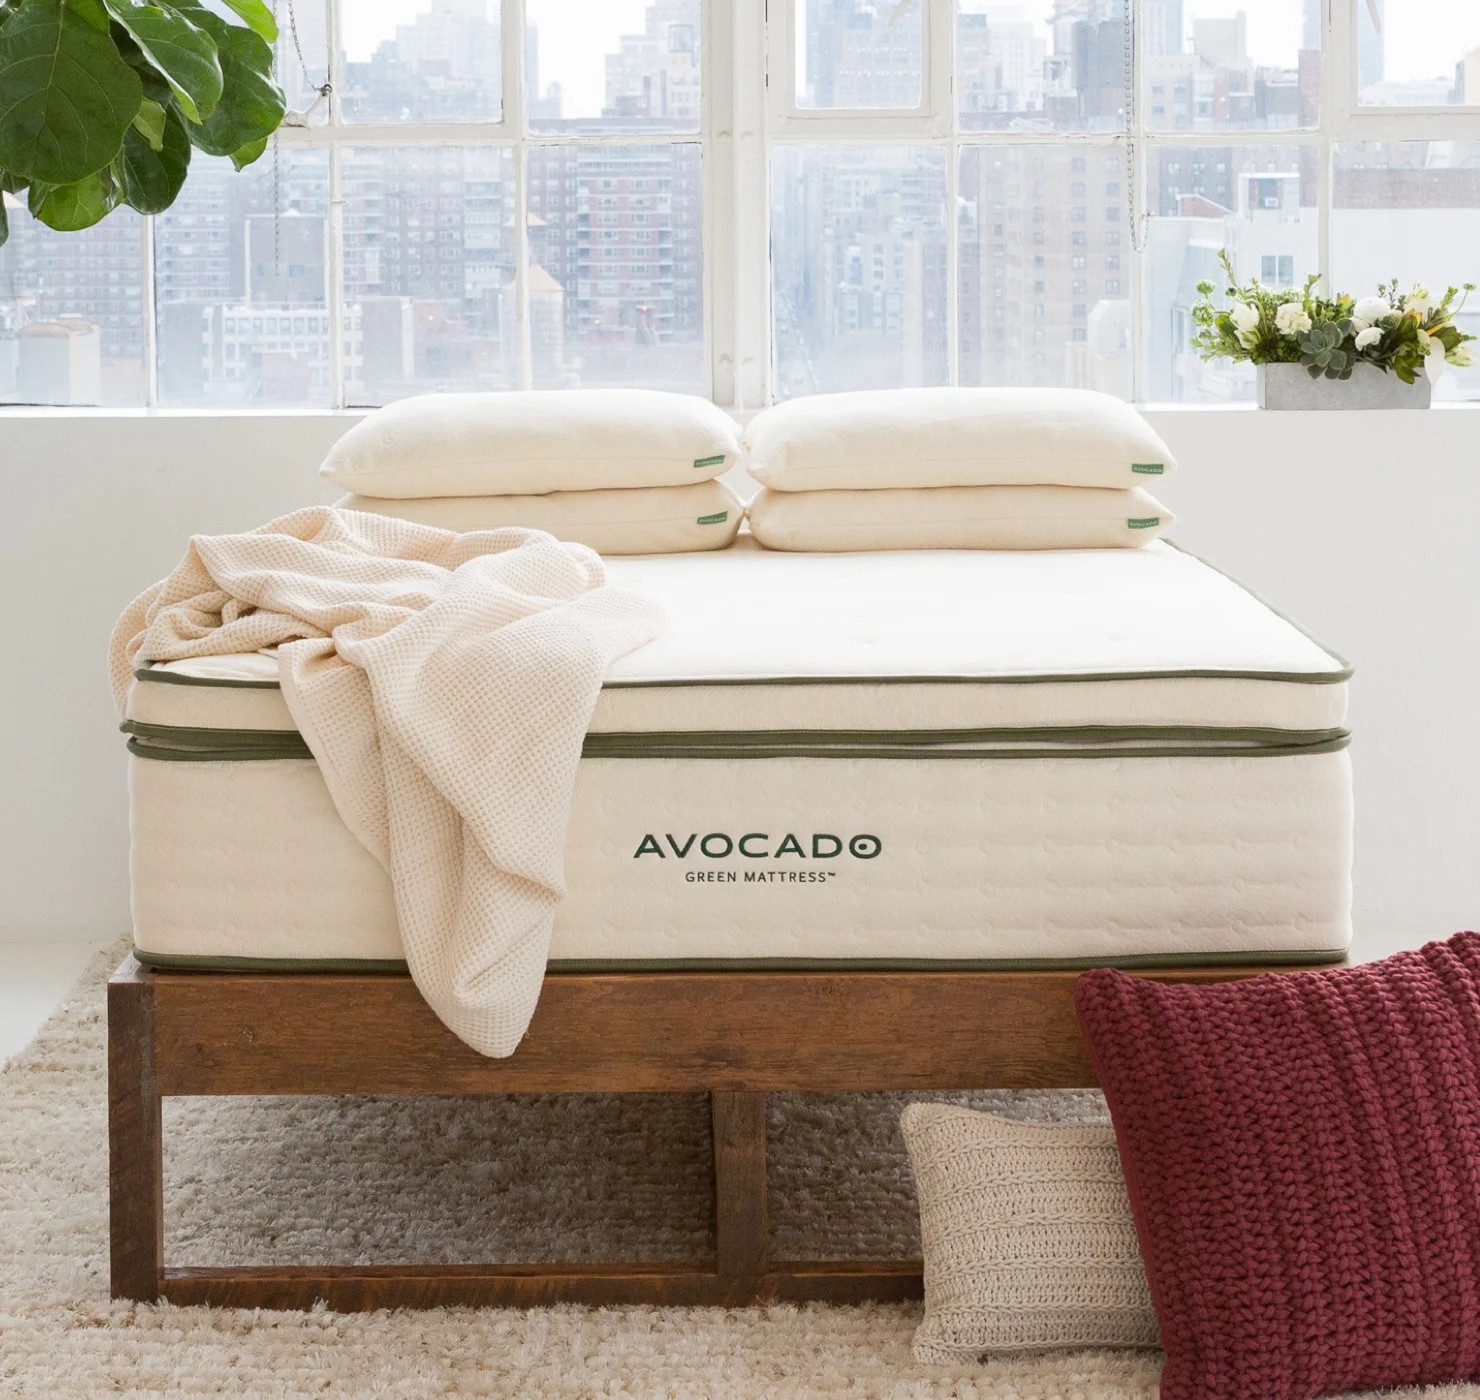 suggested avocado mattress pairings